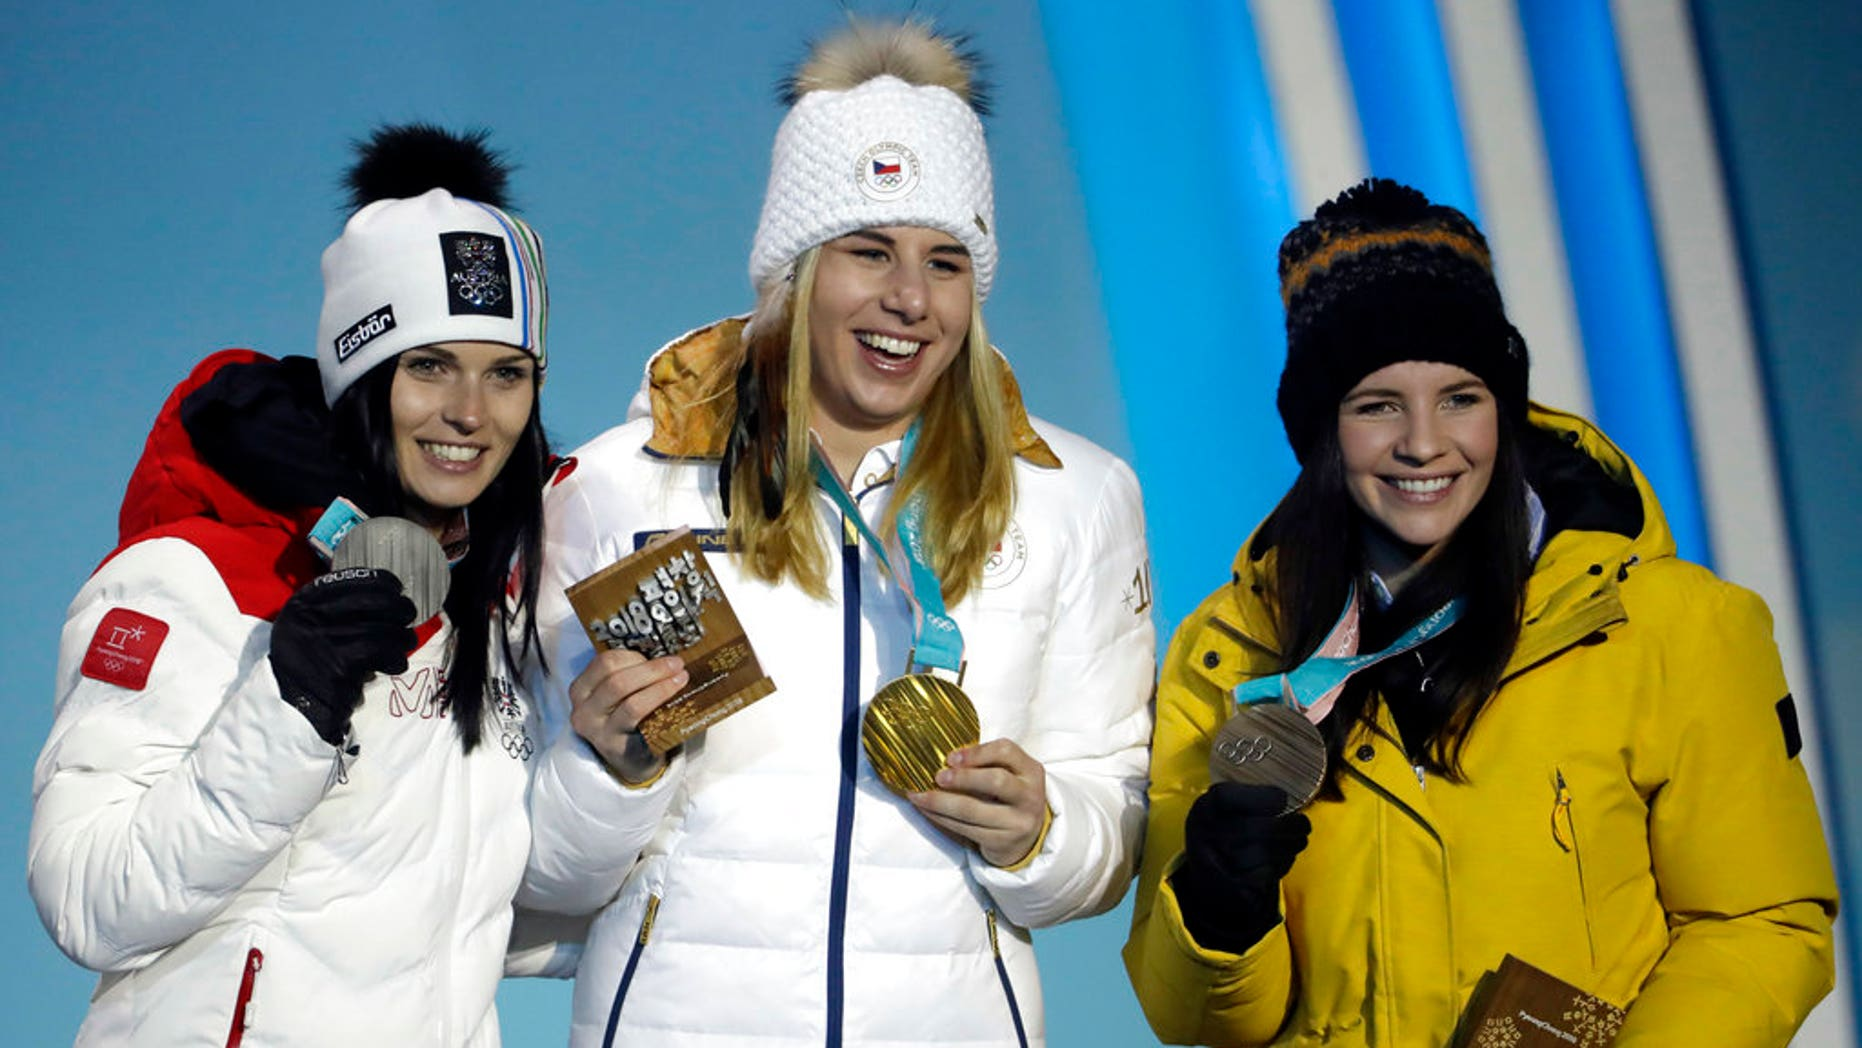 Medalists in the women's super-G, from left: Austria's Anna Veith, silver; Czech Republic's Ester Ledecka, gold; and Liechtenstein's Tina Weirather, bronze, are seen at the 2018 Winter Olympics in South Korea, Feb. 17, 2018.